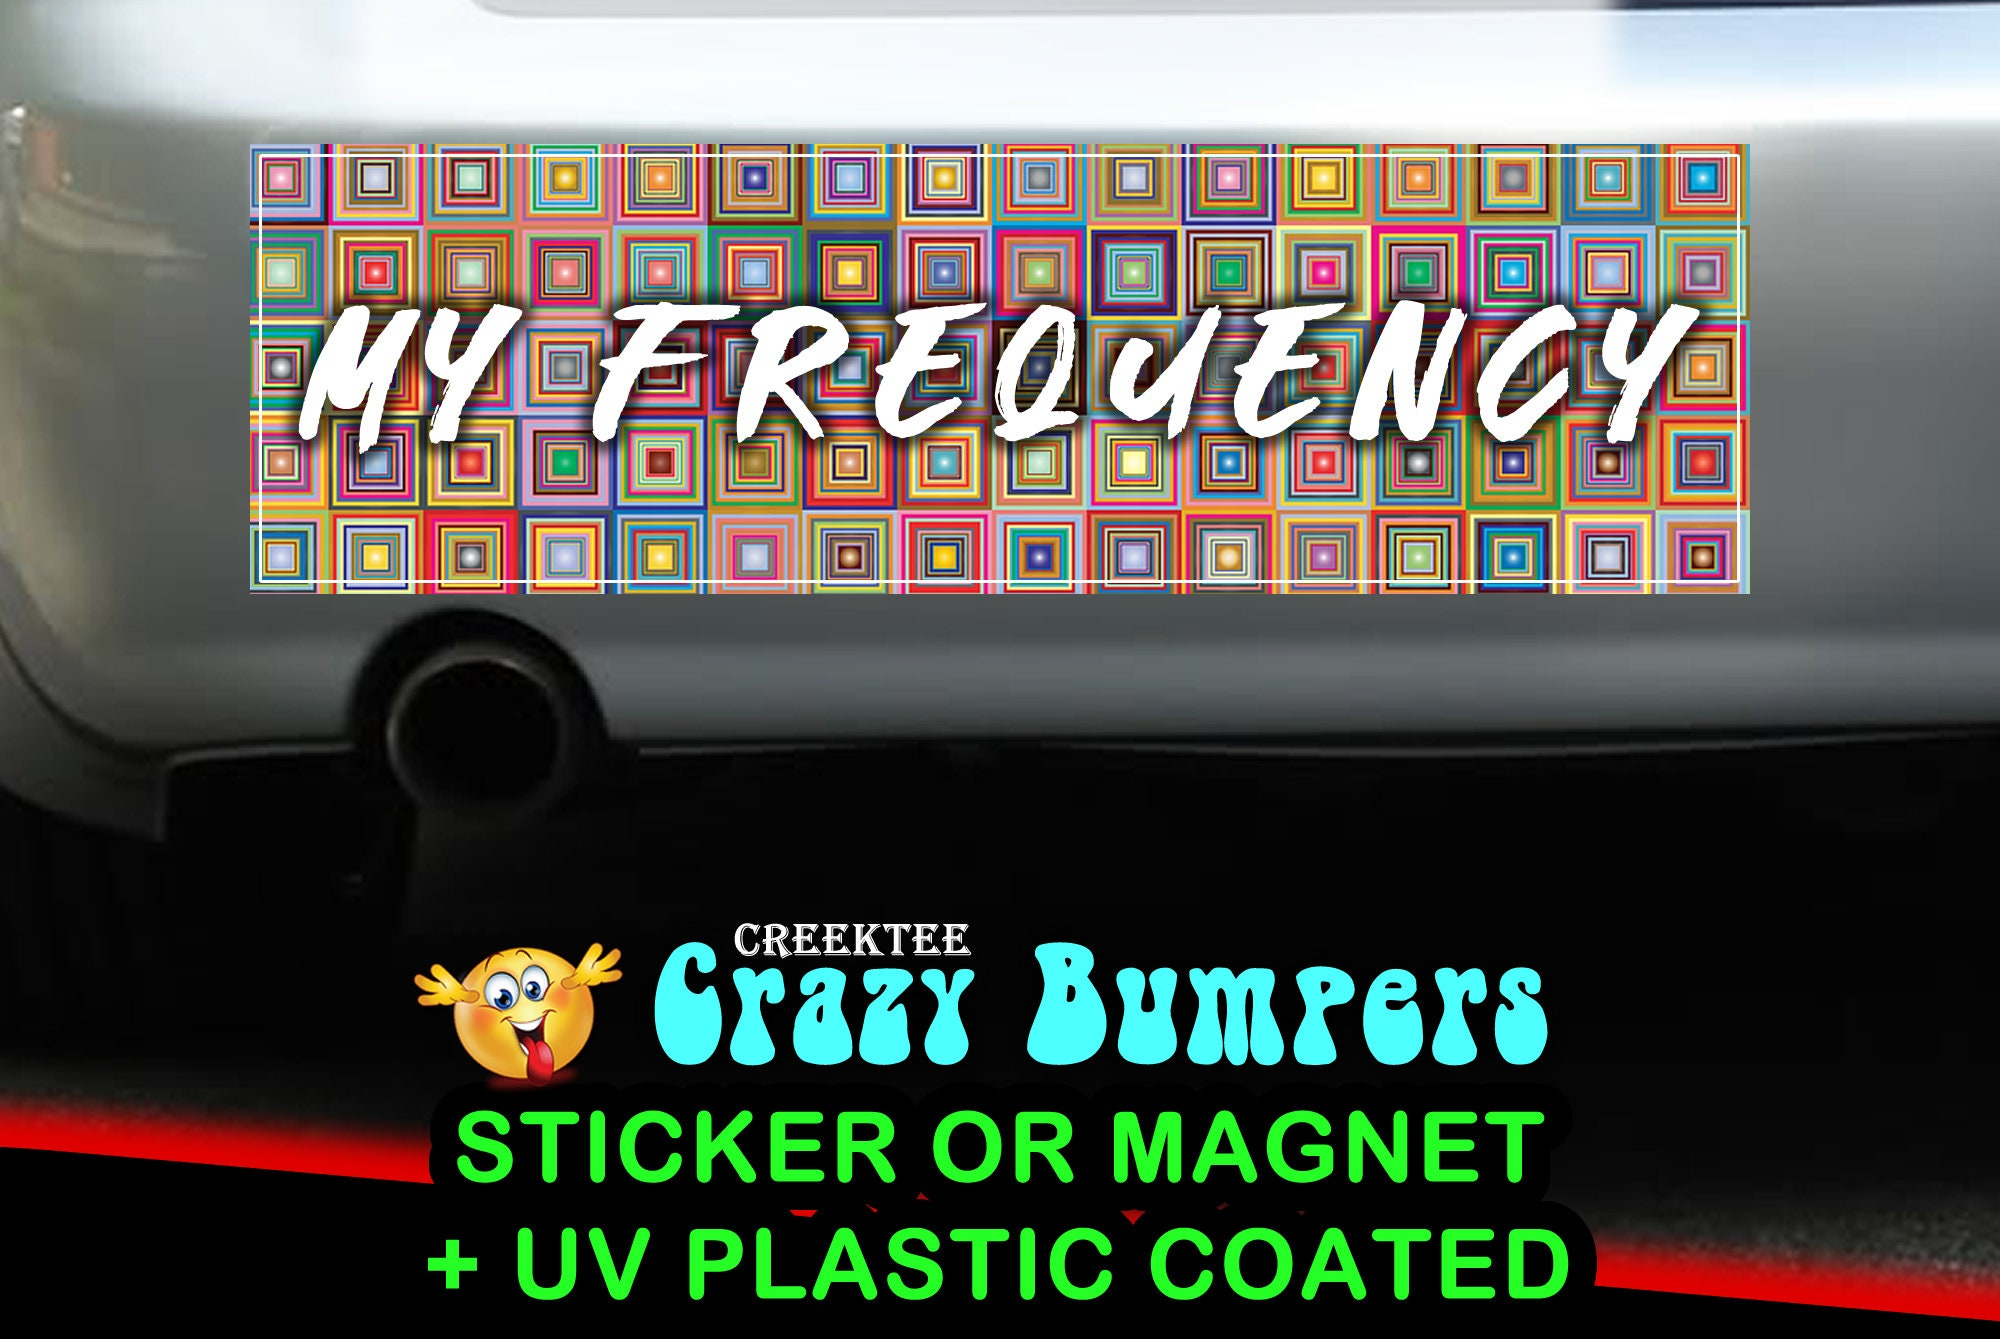 CAD$7.99 - My Frequency 10 x 3 Bumper Sticker or Magnetic Bumper Sticker Available